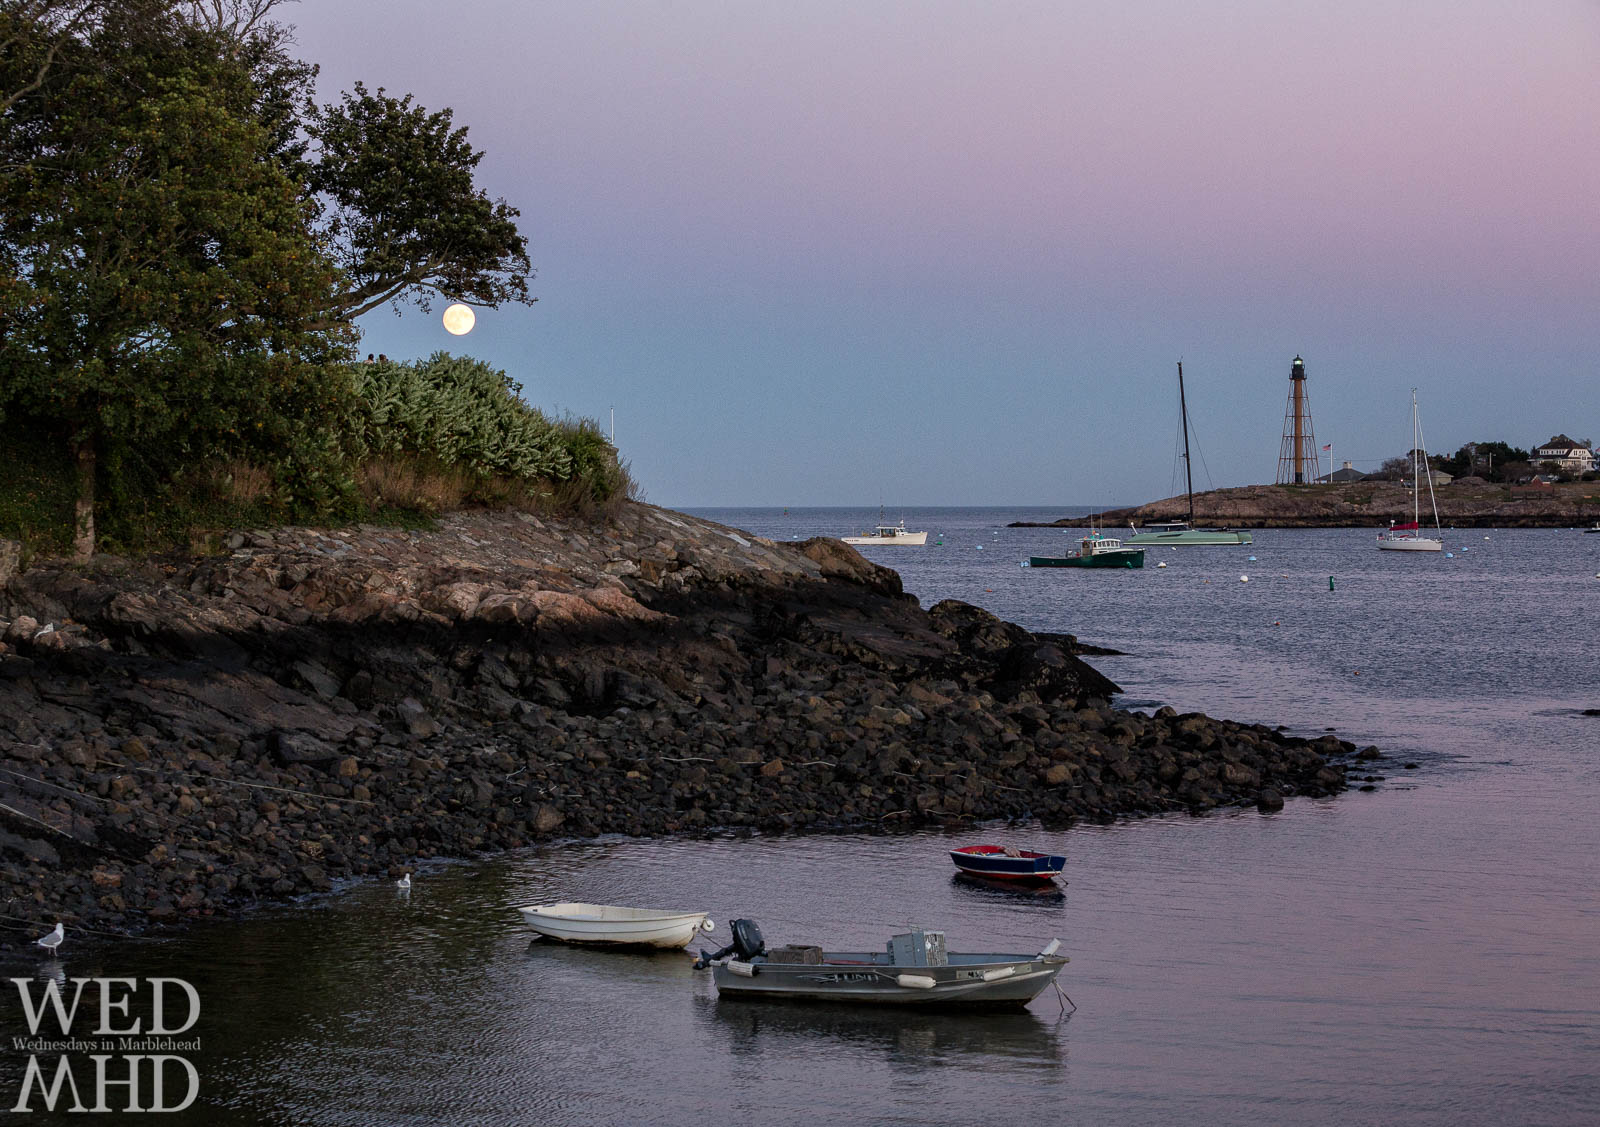 The Harvest moon rises under the tree at Fort Sewall with boats in Fort Beach and the lighthouse shining its beacon